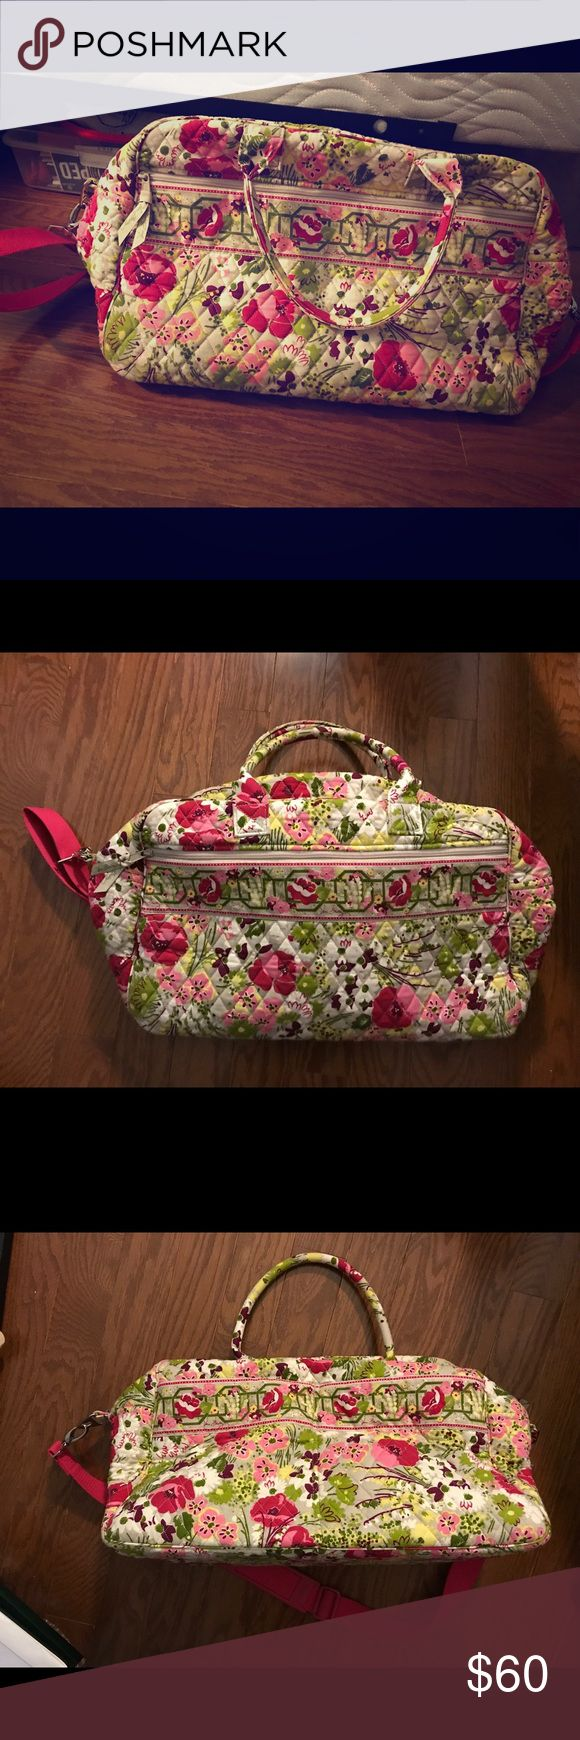 Vera Bradley Weekender Bag Vera Bradley Weekender Bag in Make Me Blush (retired pattern). Excellent used condition, only used it a few times. All offers considered. Vera Bradley Bags Travel Bags